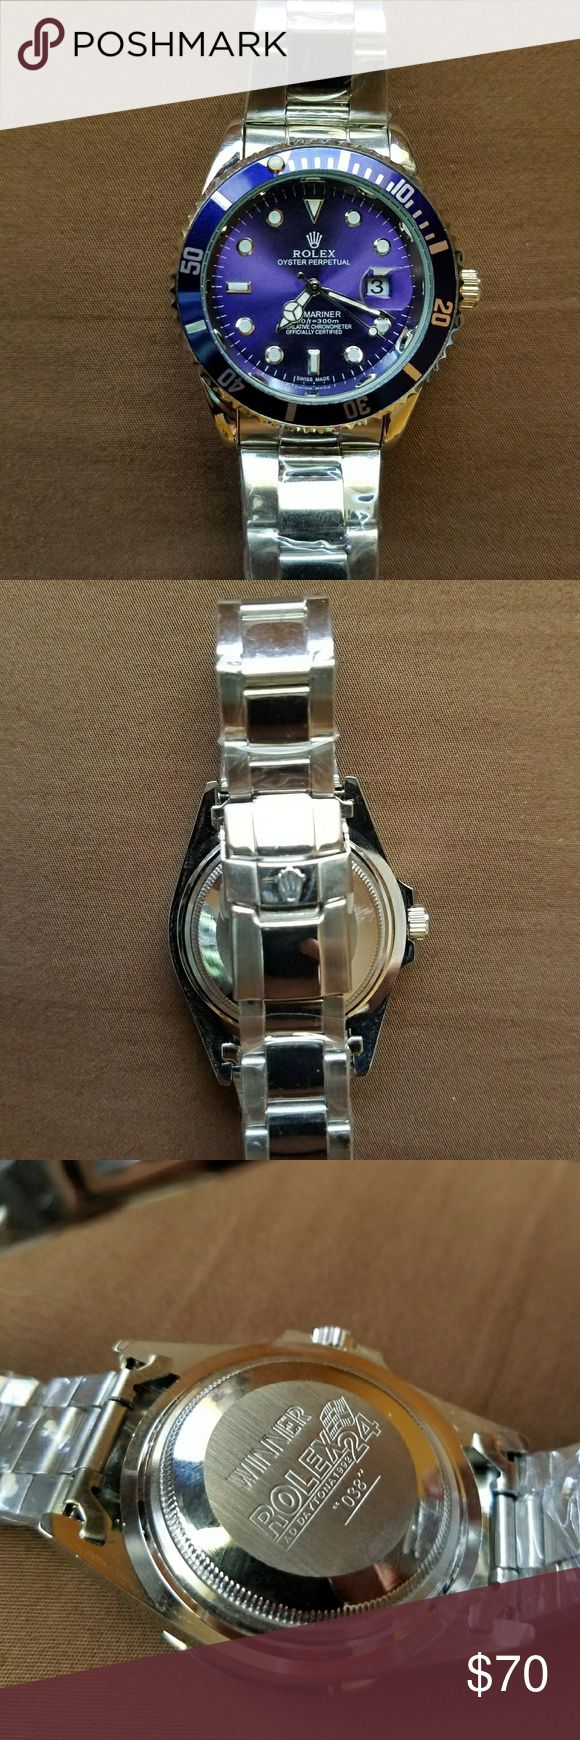 Mens watch Brand new with plastic wrap still on. rolex Accessories Jewelry